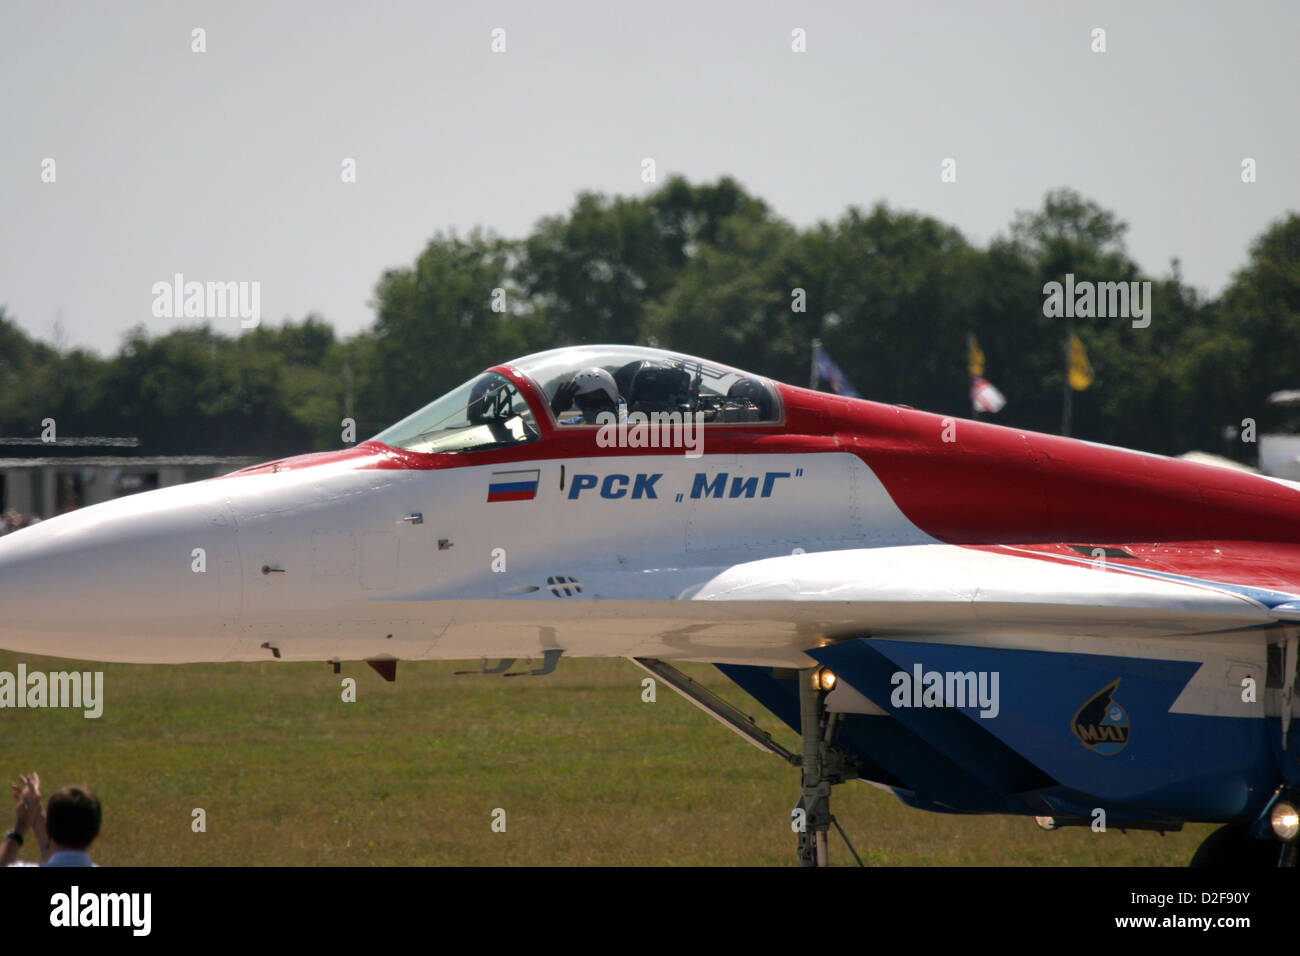 Mikoyan MiG-29 on airfield pilot in cockpit Stock Photo: 53196779